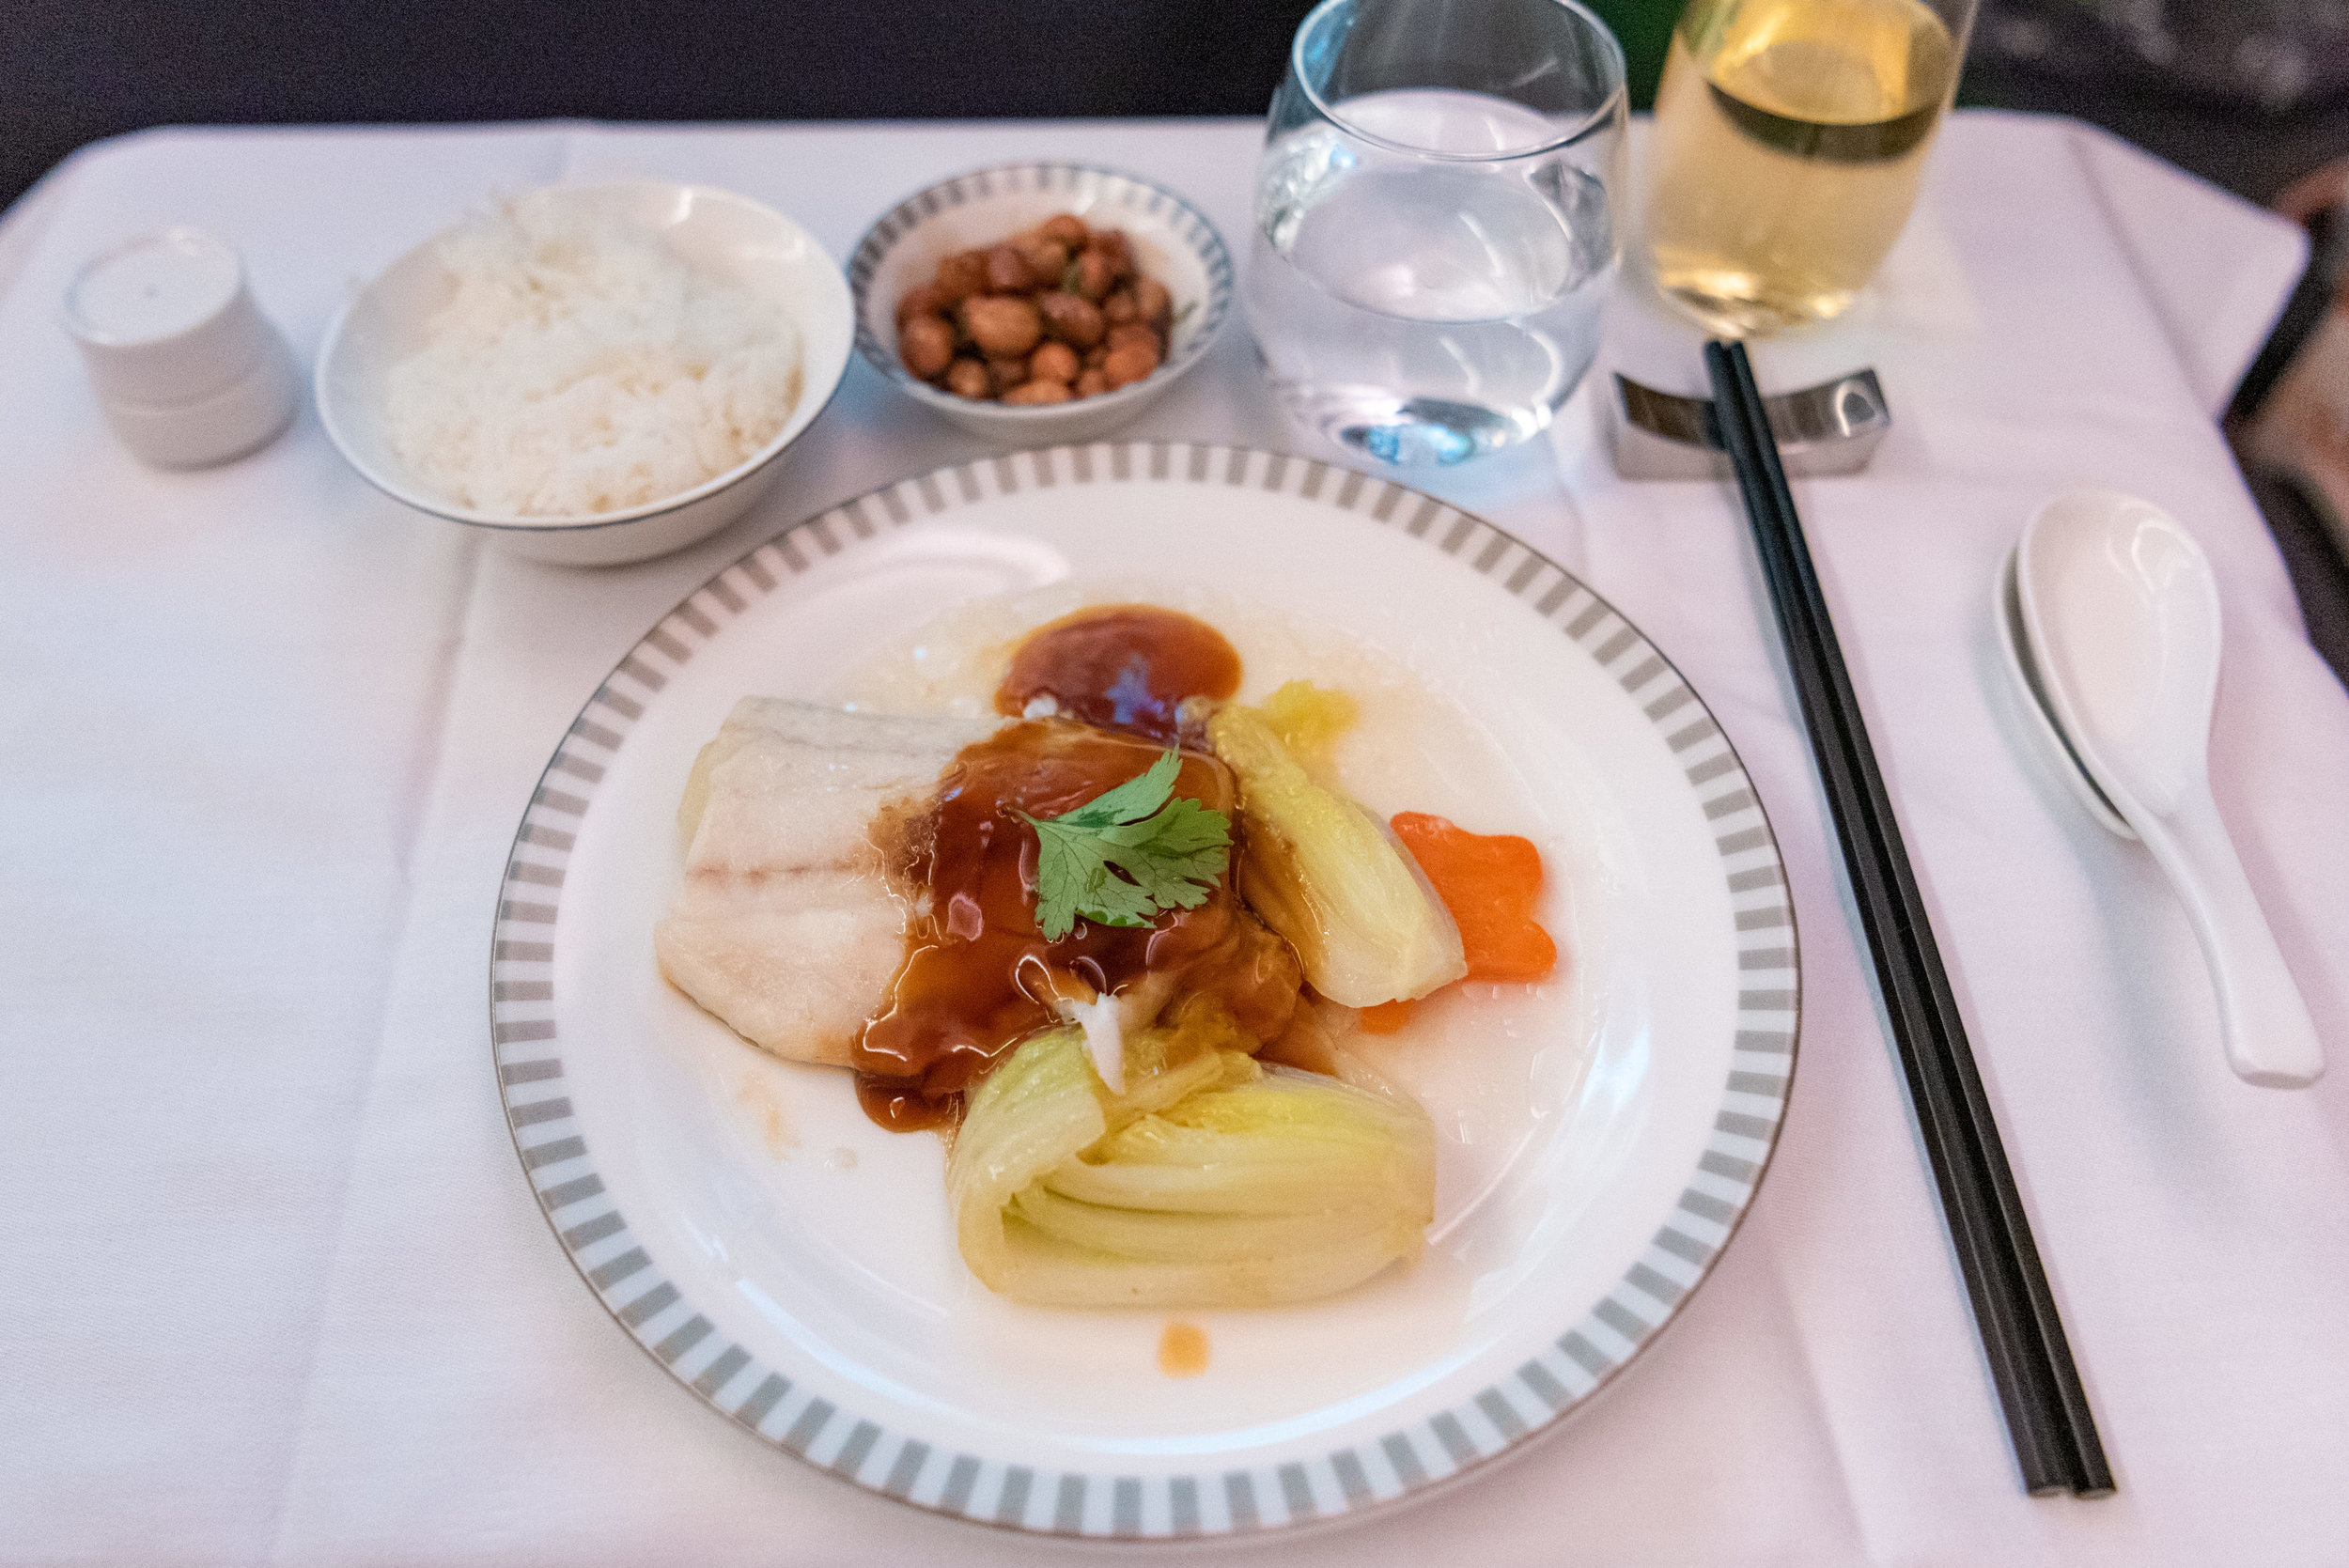 Steamed Seabass with Roasted Garlic  Singapore Airlines Business Class SQ833 A380-800 - PVG to SIN